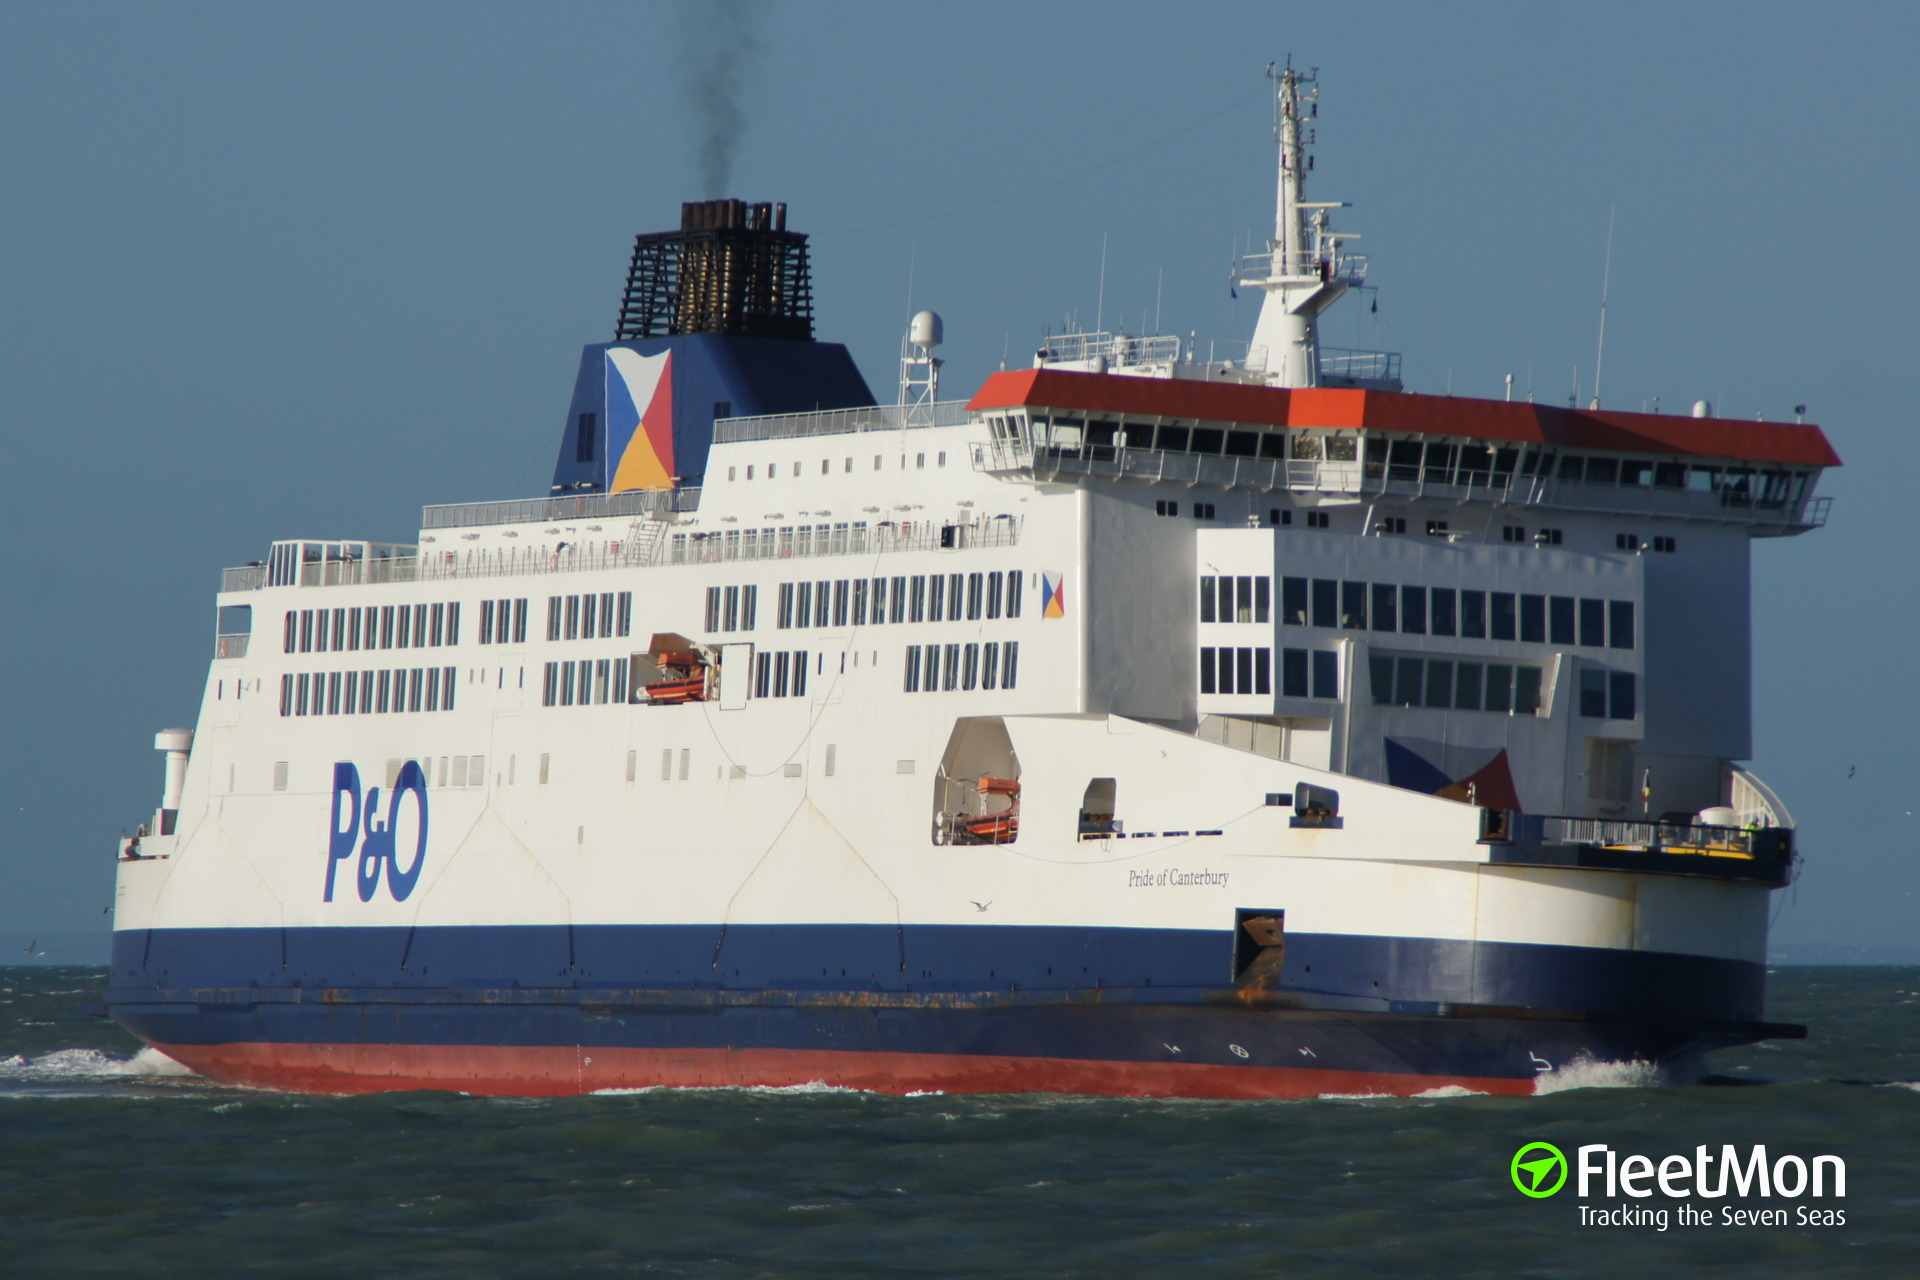 ​Ferry PRIDE OF CANTERBURY on fire